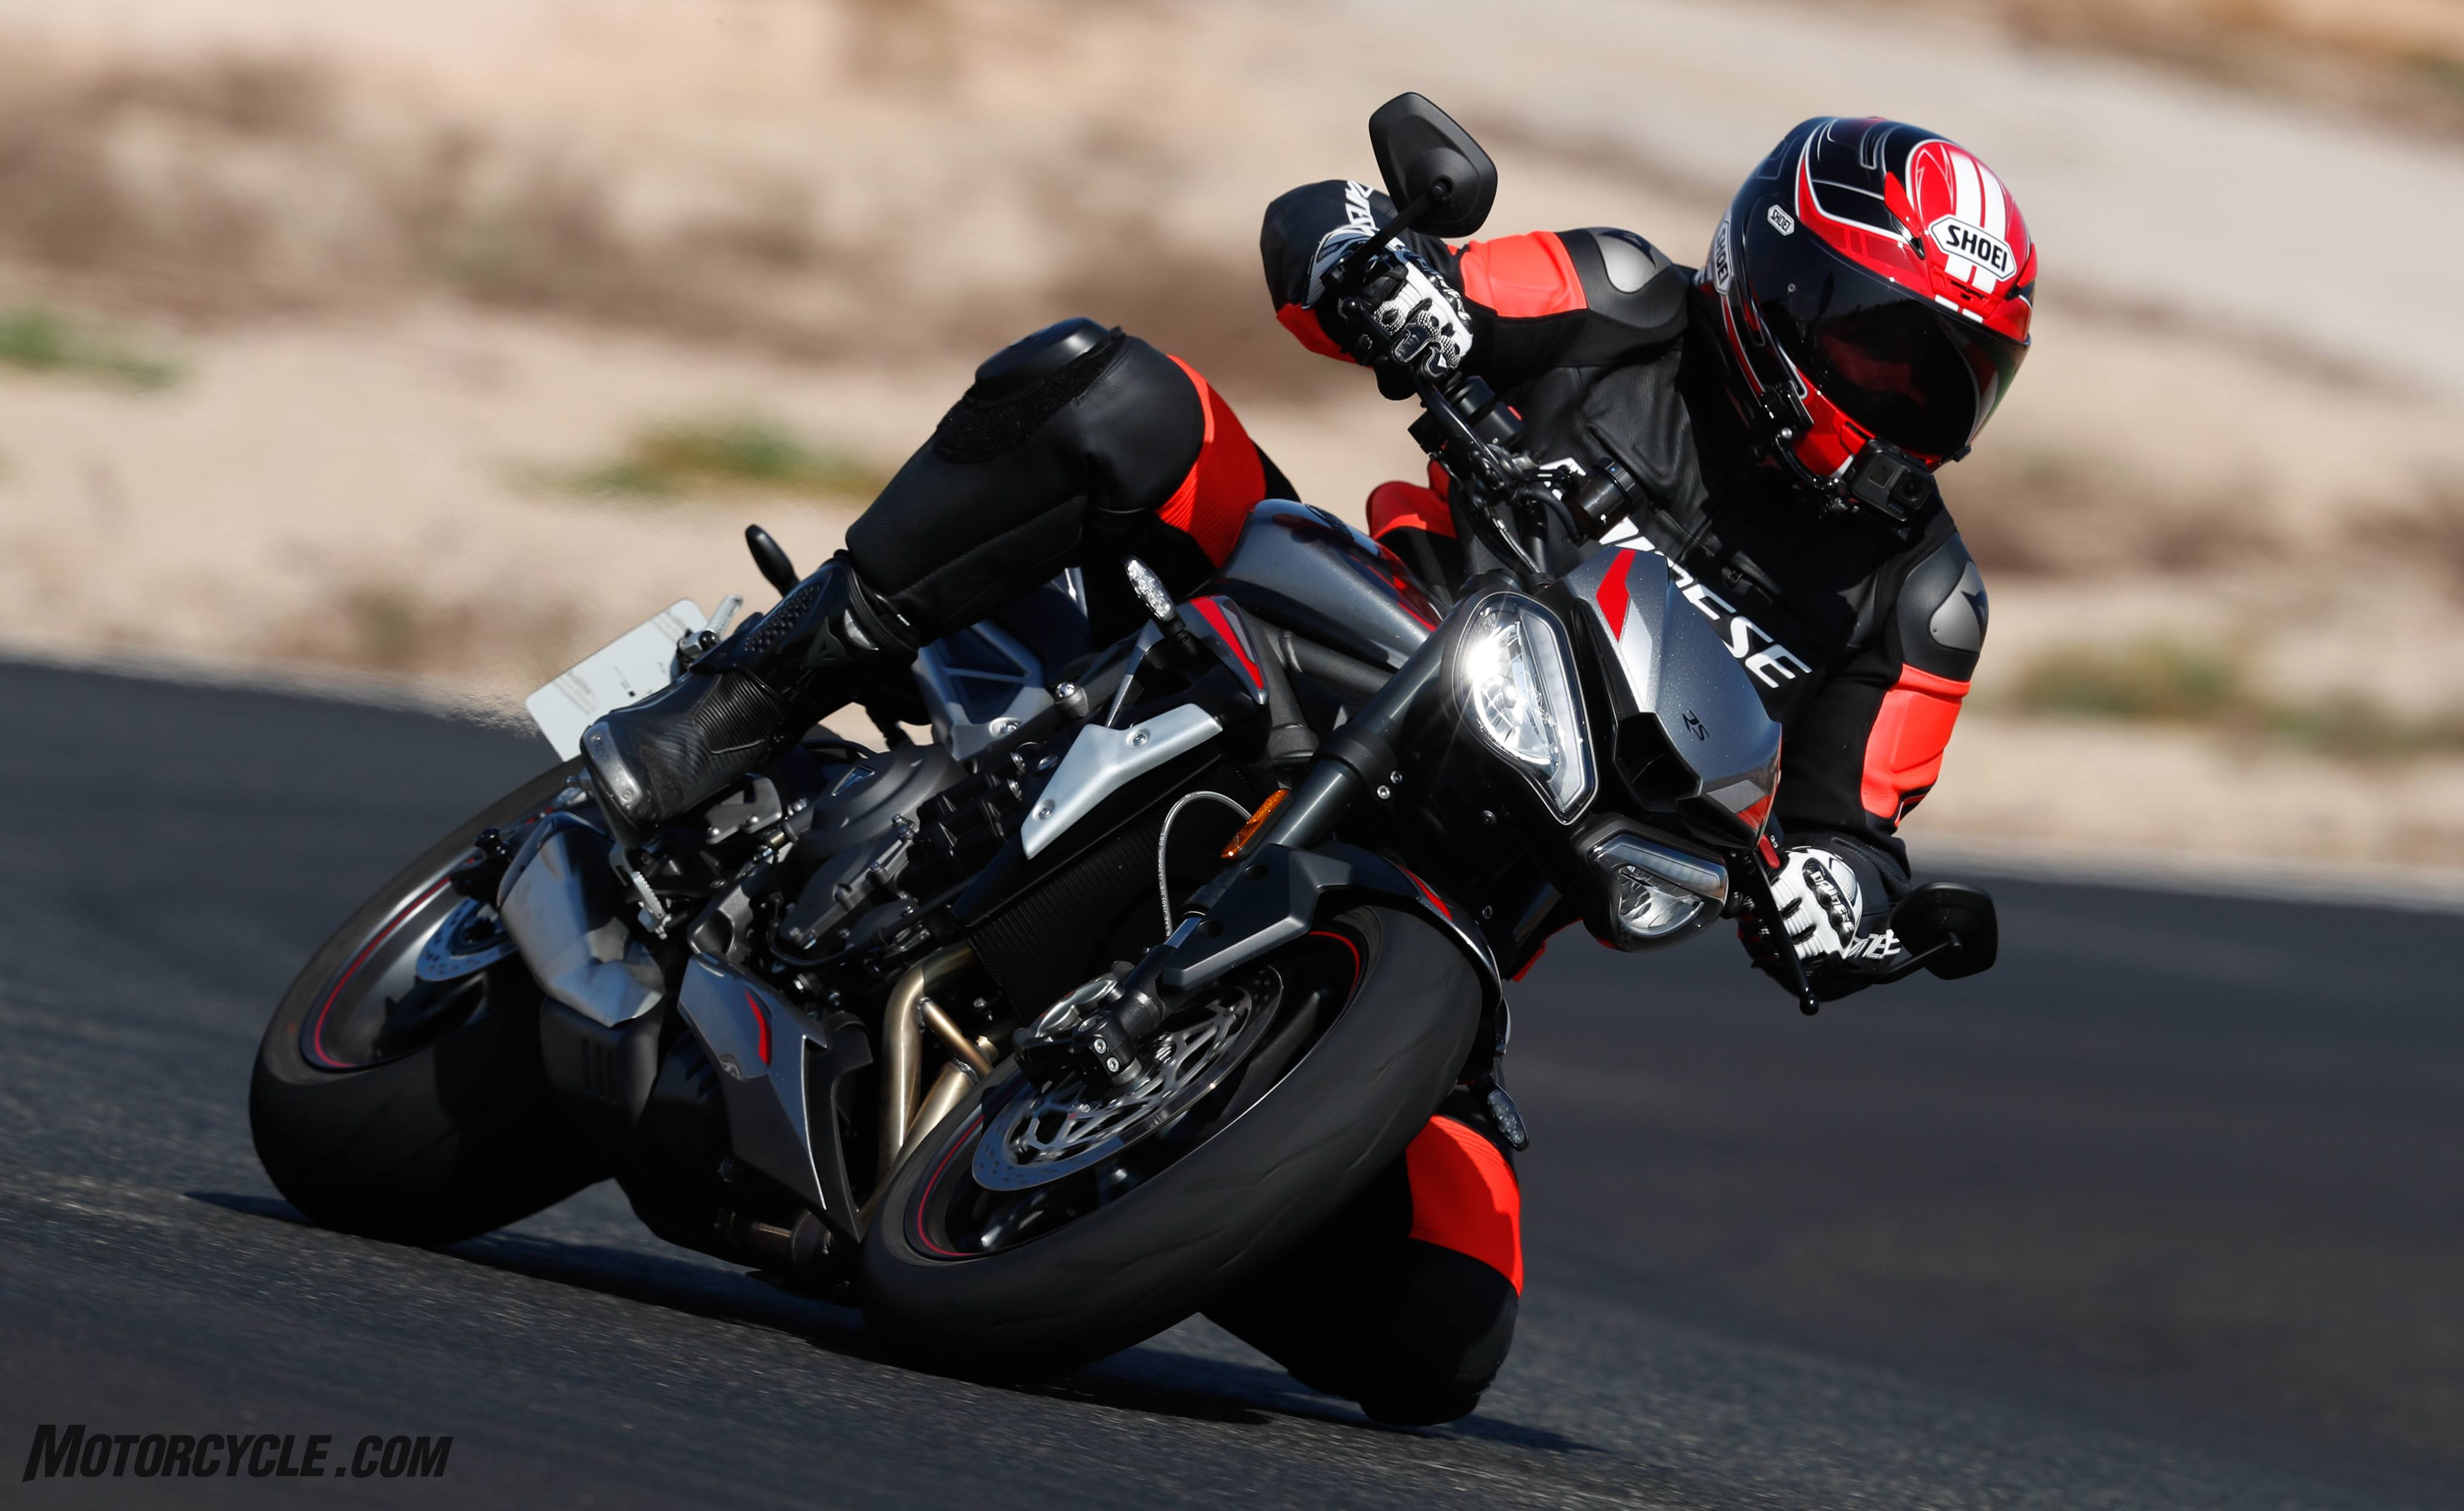 2020 Triumph Street Triple 765 RS Review - First Ride